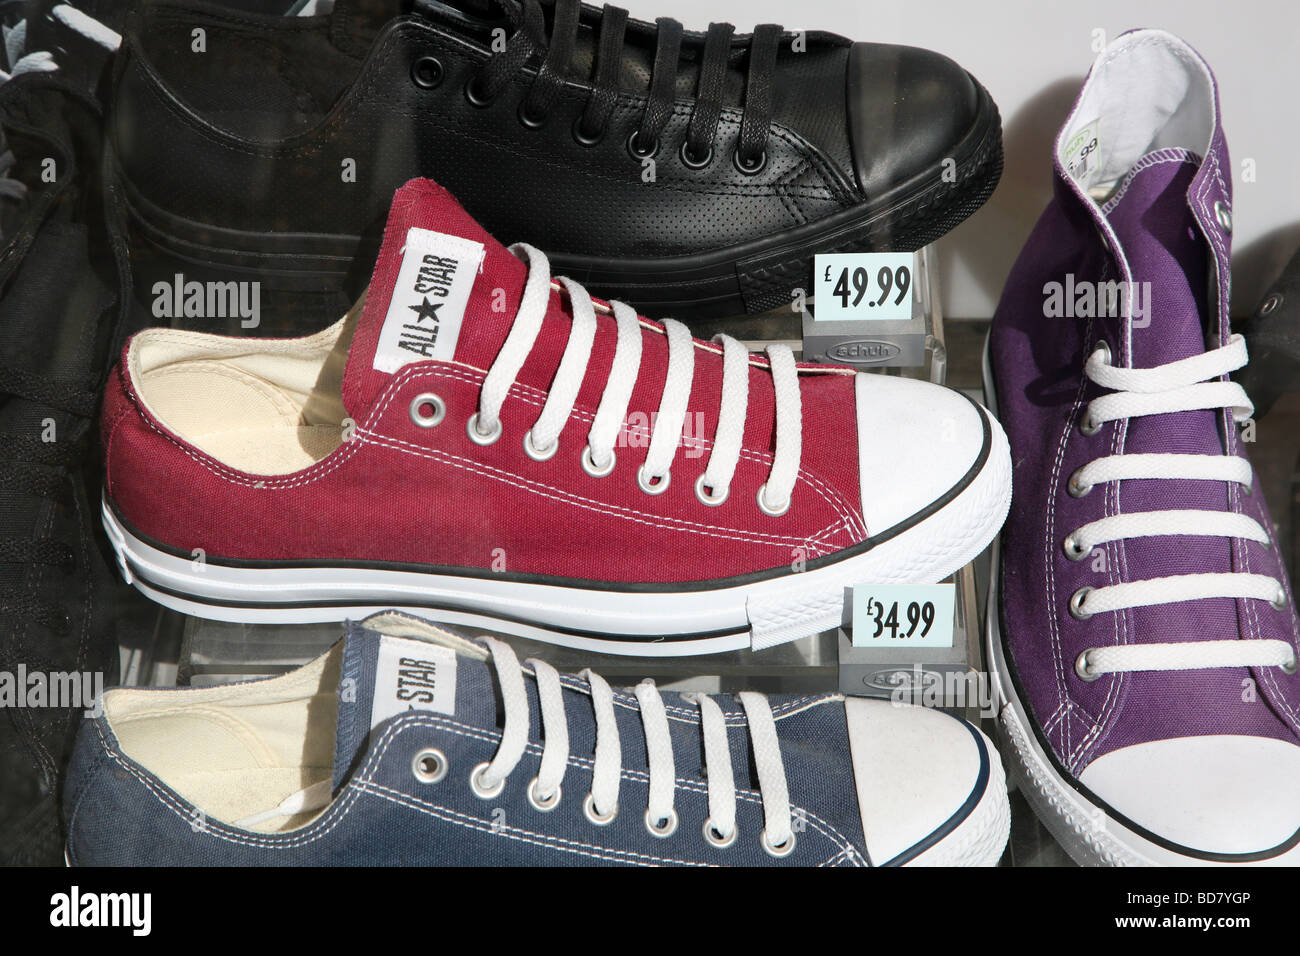 converse london, mens and womens Converse All Star shoes